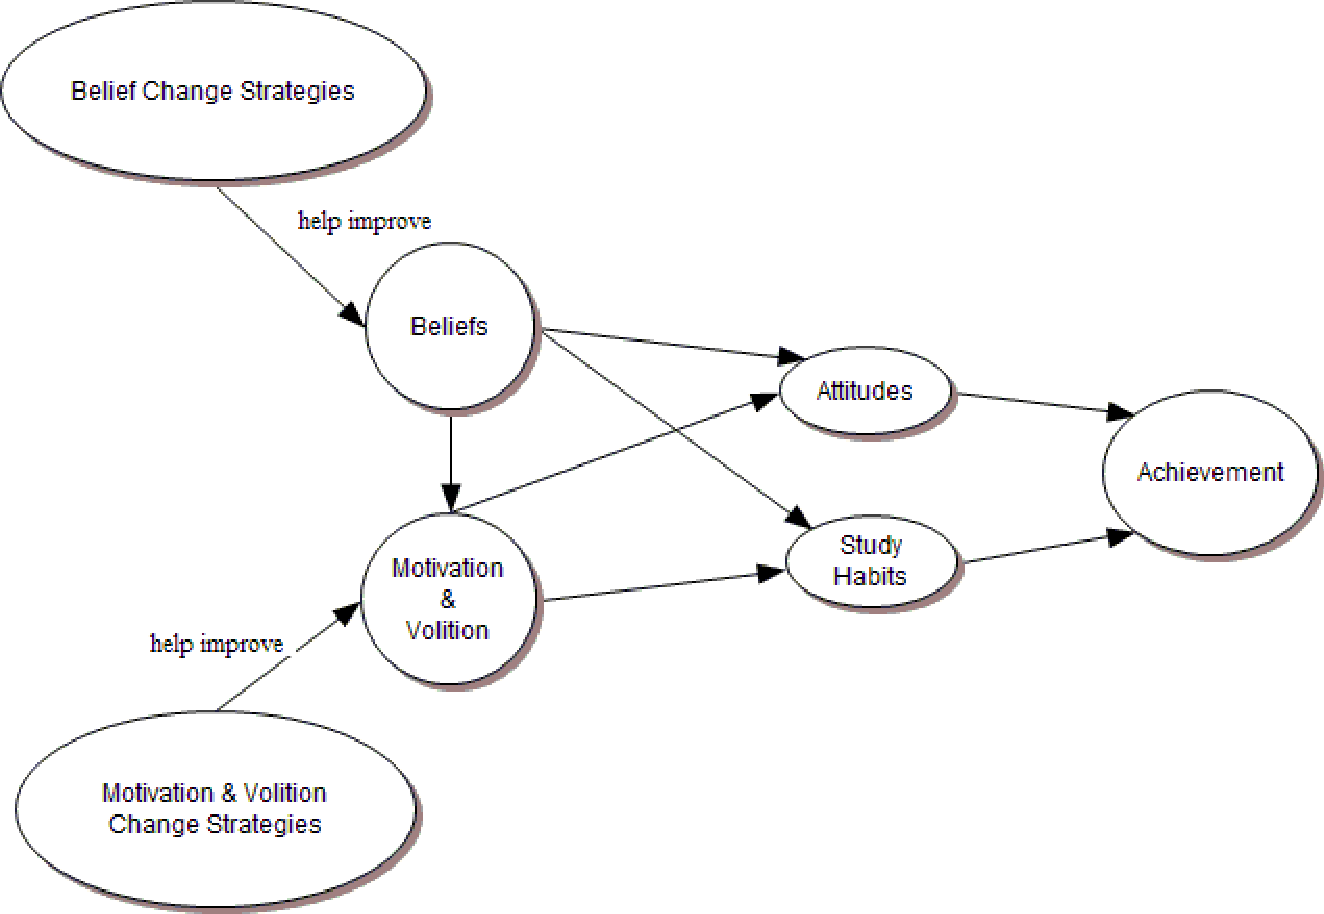 Effects Of Motivation Volition And Belief Change Strategies On